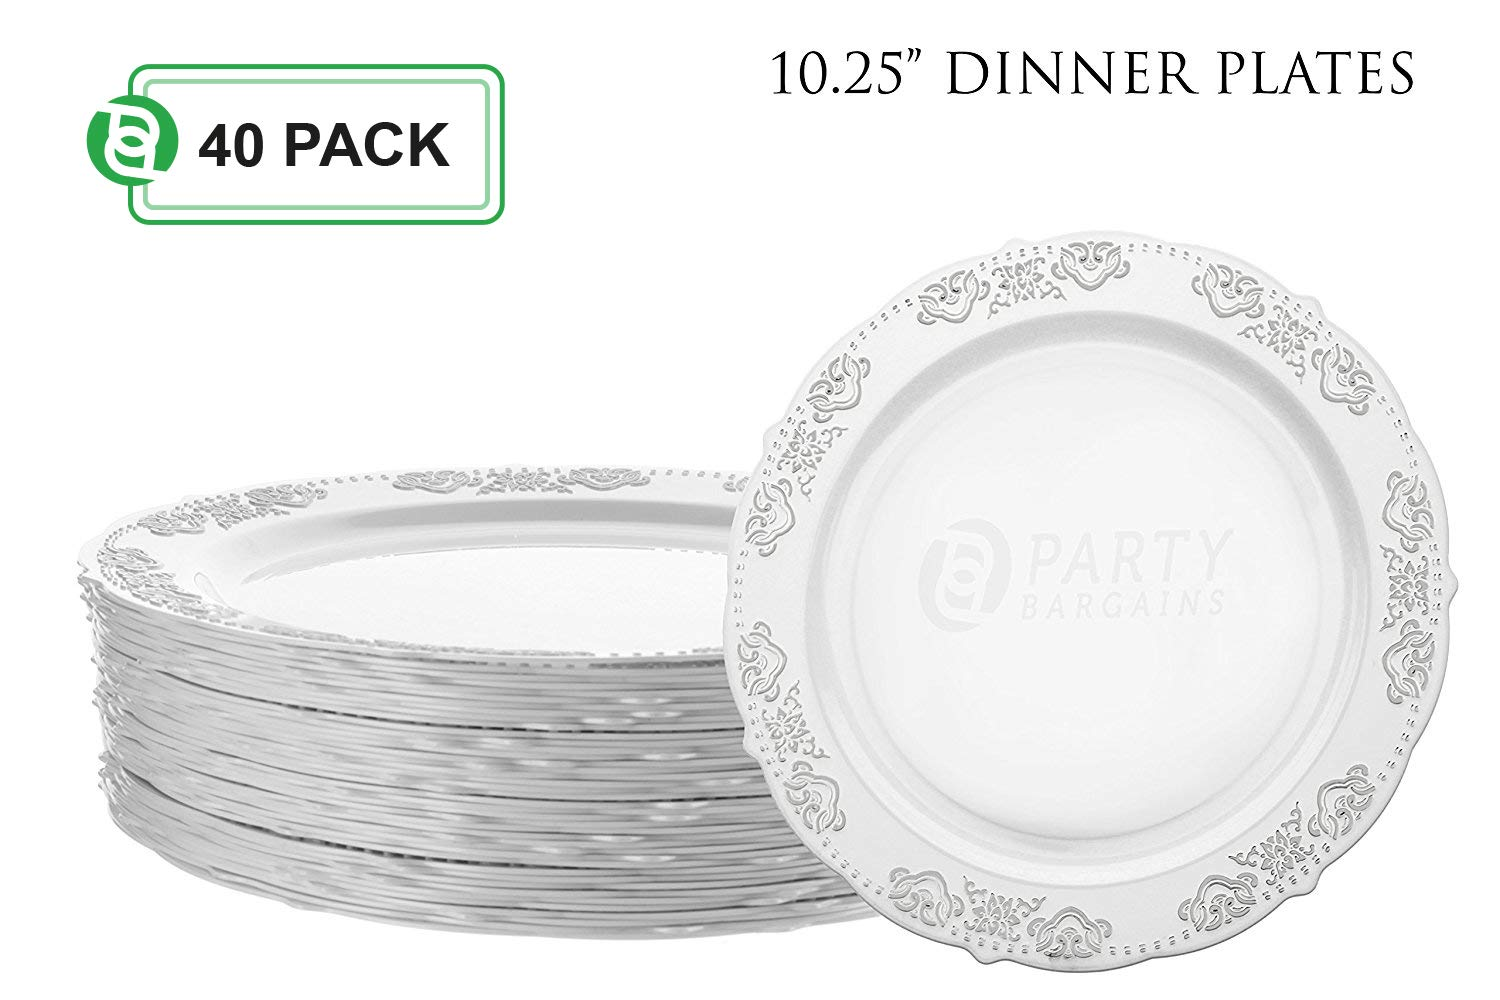 Party Bargains Disposable Plastic Plates | Heavyweight & Premium Quality China Like Dinnerware for Weddings, Bridal Showers, Engagement Parties & More | 10.25 Inches Silver Dinner Plates | 40 Count